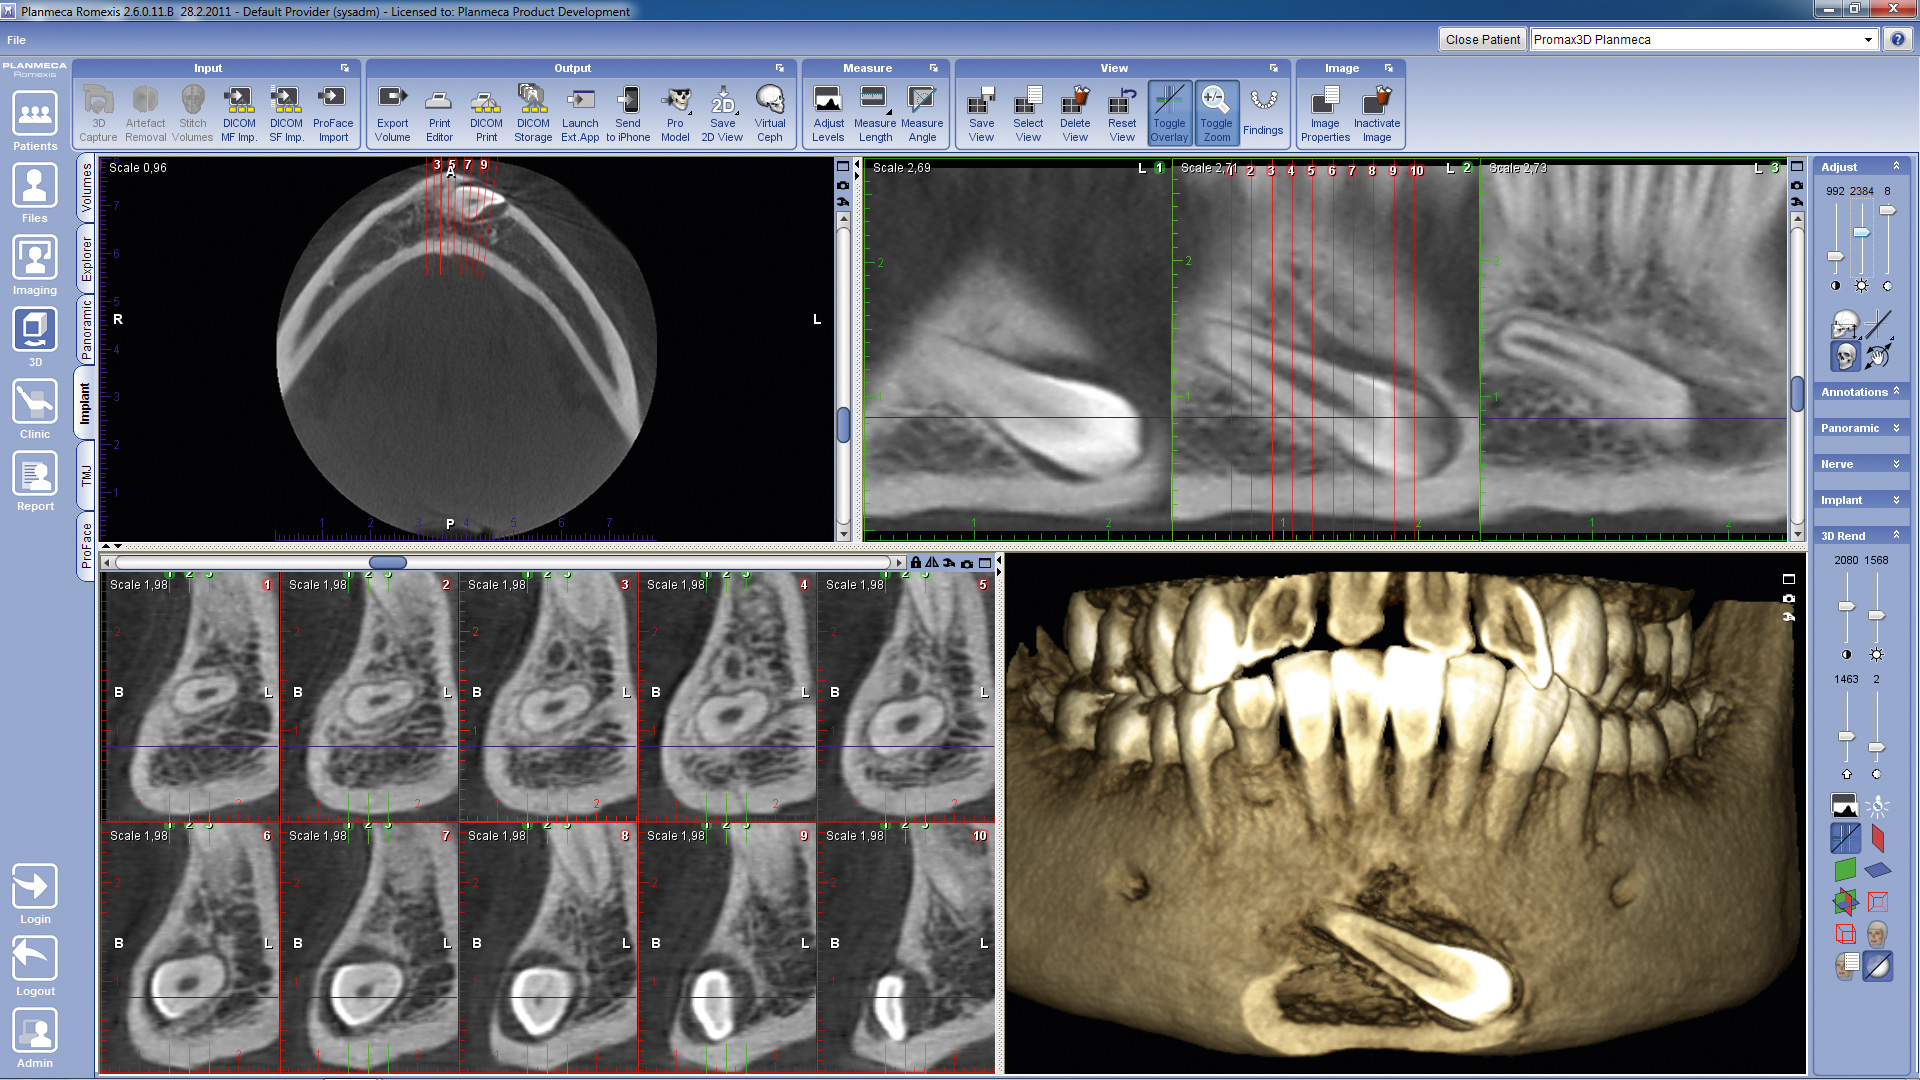 3D implant viewer